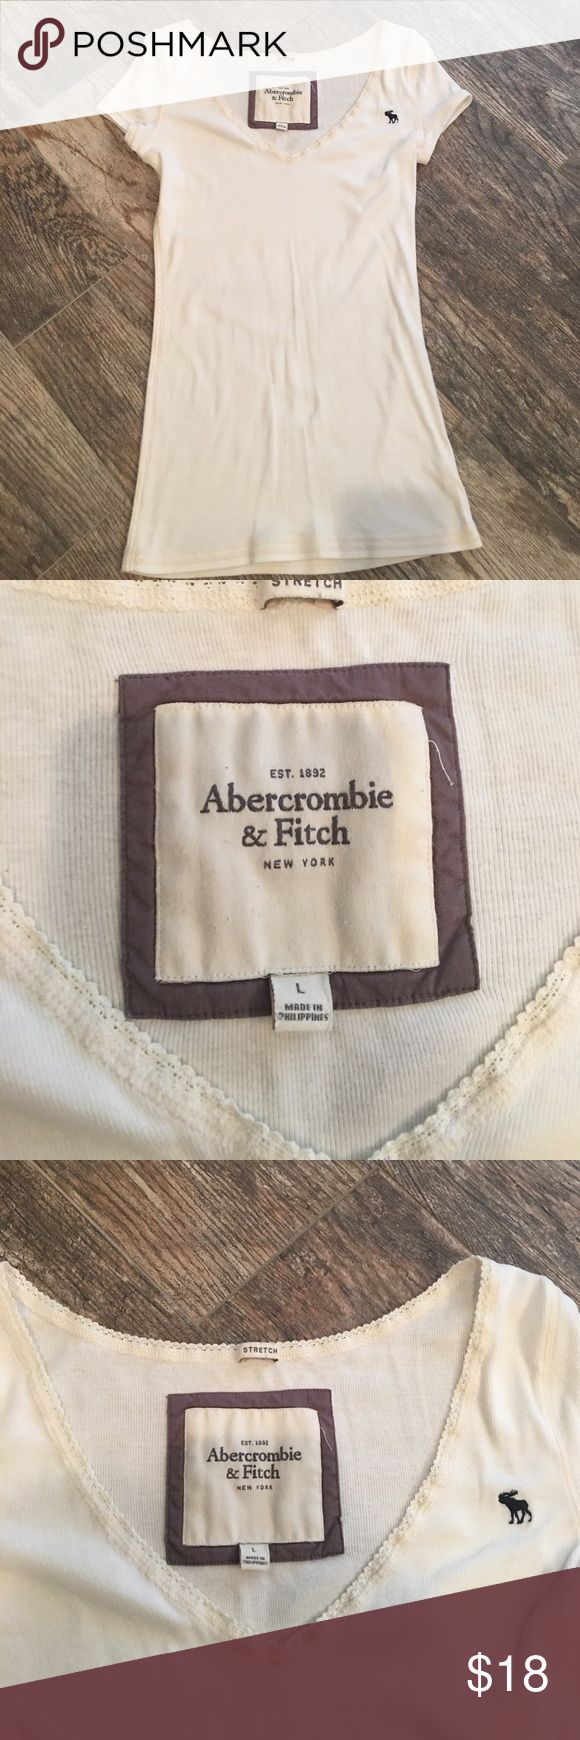 Abercrombie and Fitch casual top Abercrombie and Fitch casual knit top. White with cream stitching and lace at neck. Size large (runs small) excellent condition. Clean smoke free home Abercrombie & Fitch Tops Tees - Short Sleeve